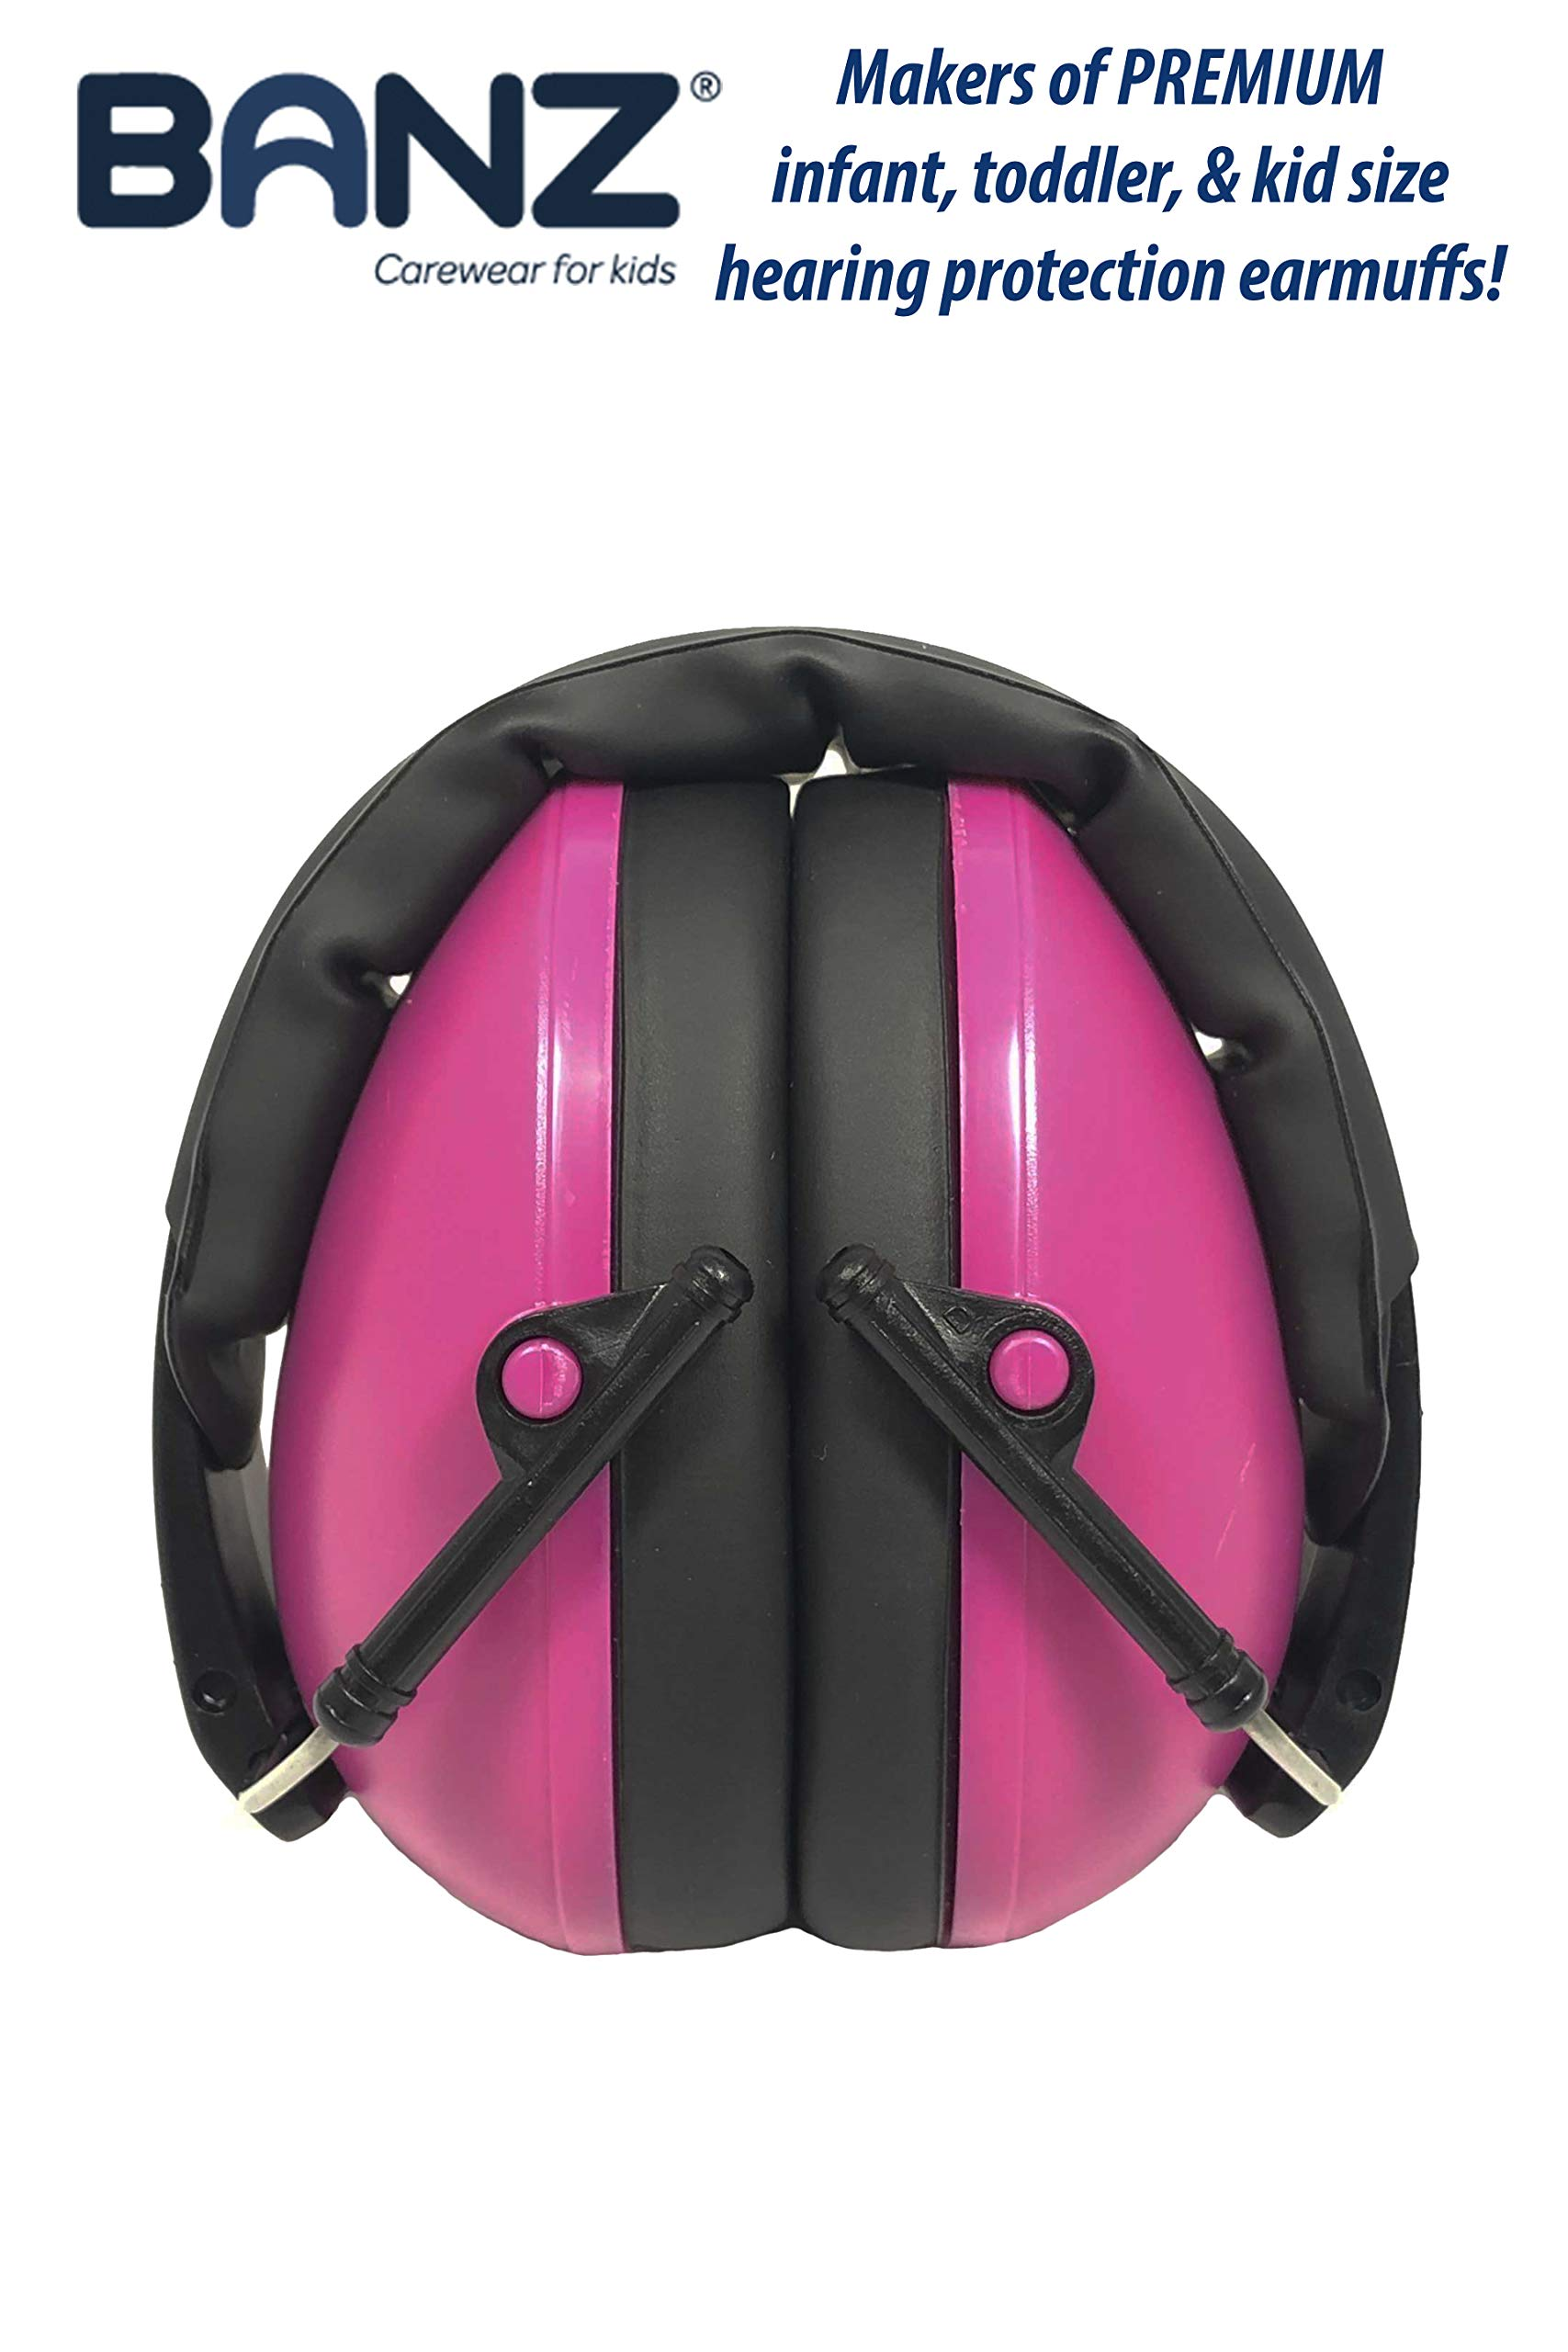 Baby Banz Earmuffs Kids Hearing Protection - Ages 2+ Years - THE BEST EARMUFFS FOR KIDS - Industry Leading Noise Reduction Rating - Soft & Comfortable - Kids Ear Protection, Magenta by BANZ (Image #5)